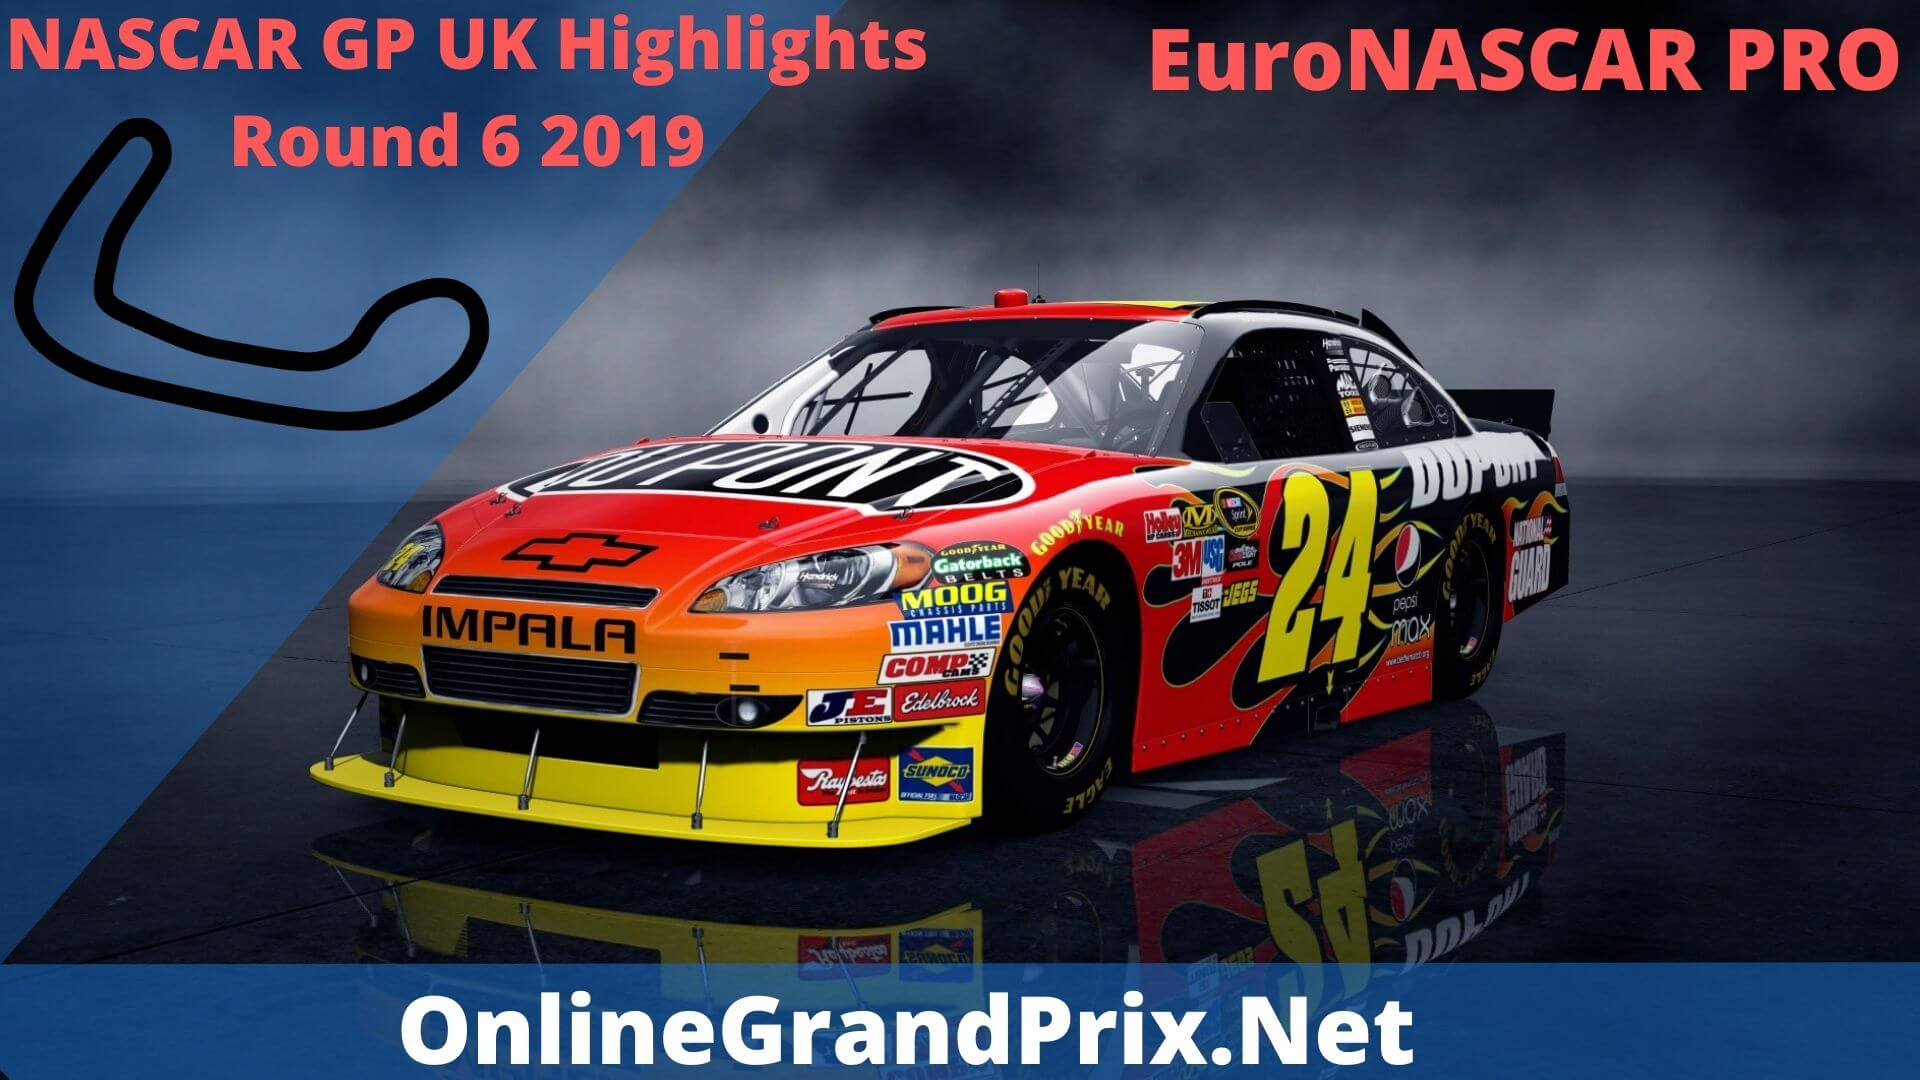 NASCAR GP UK Round 6 Highlights 2019